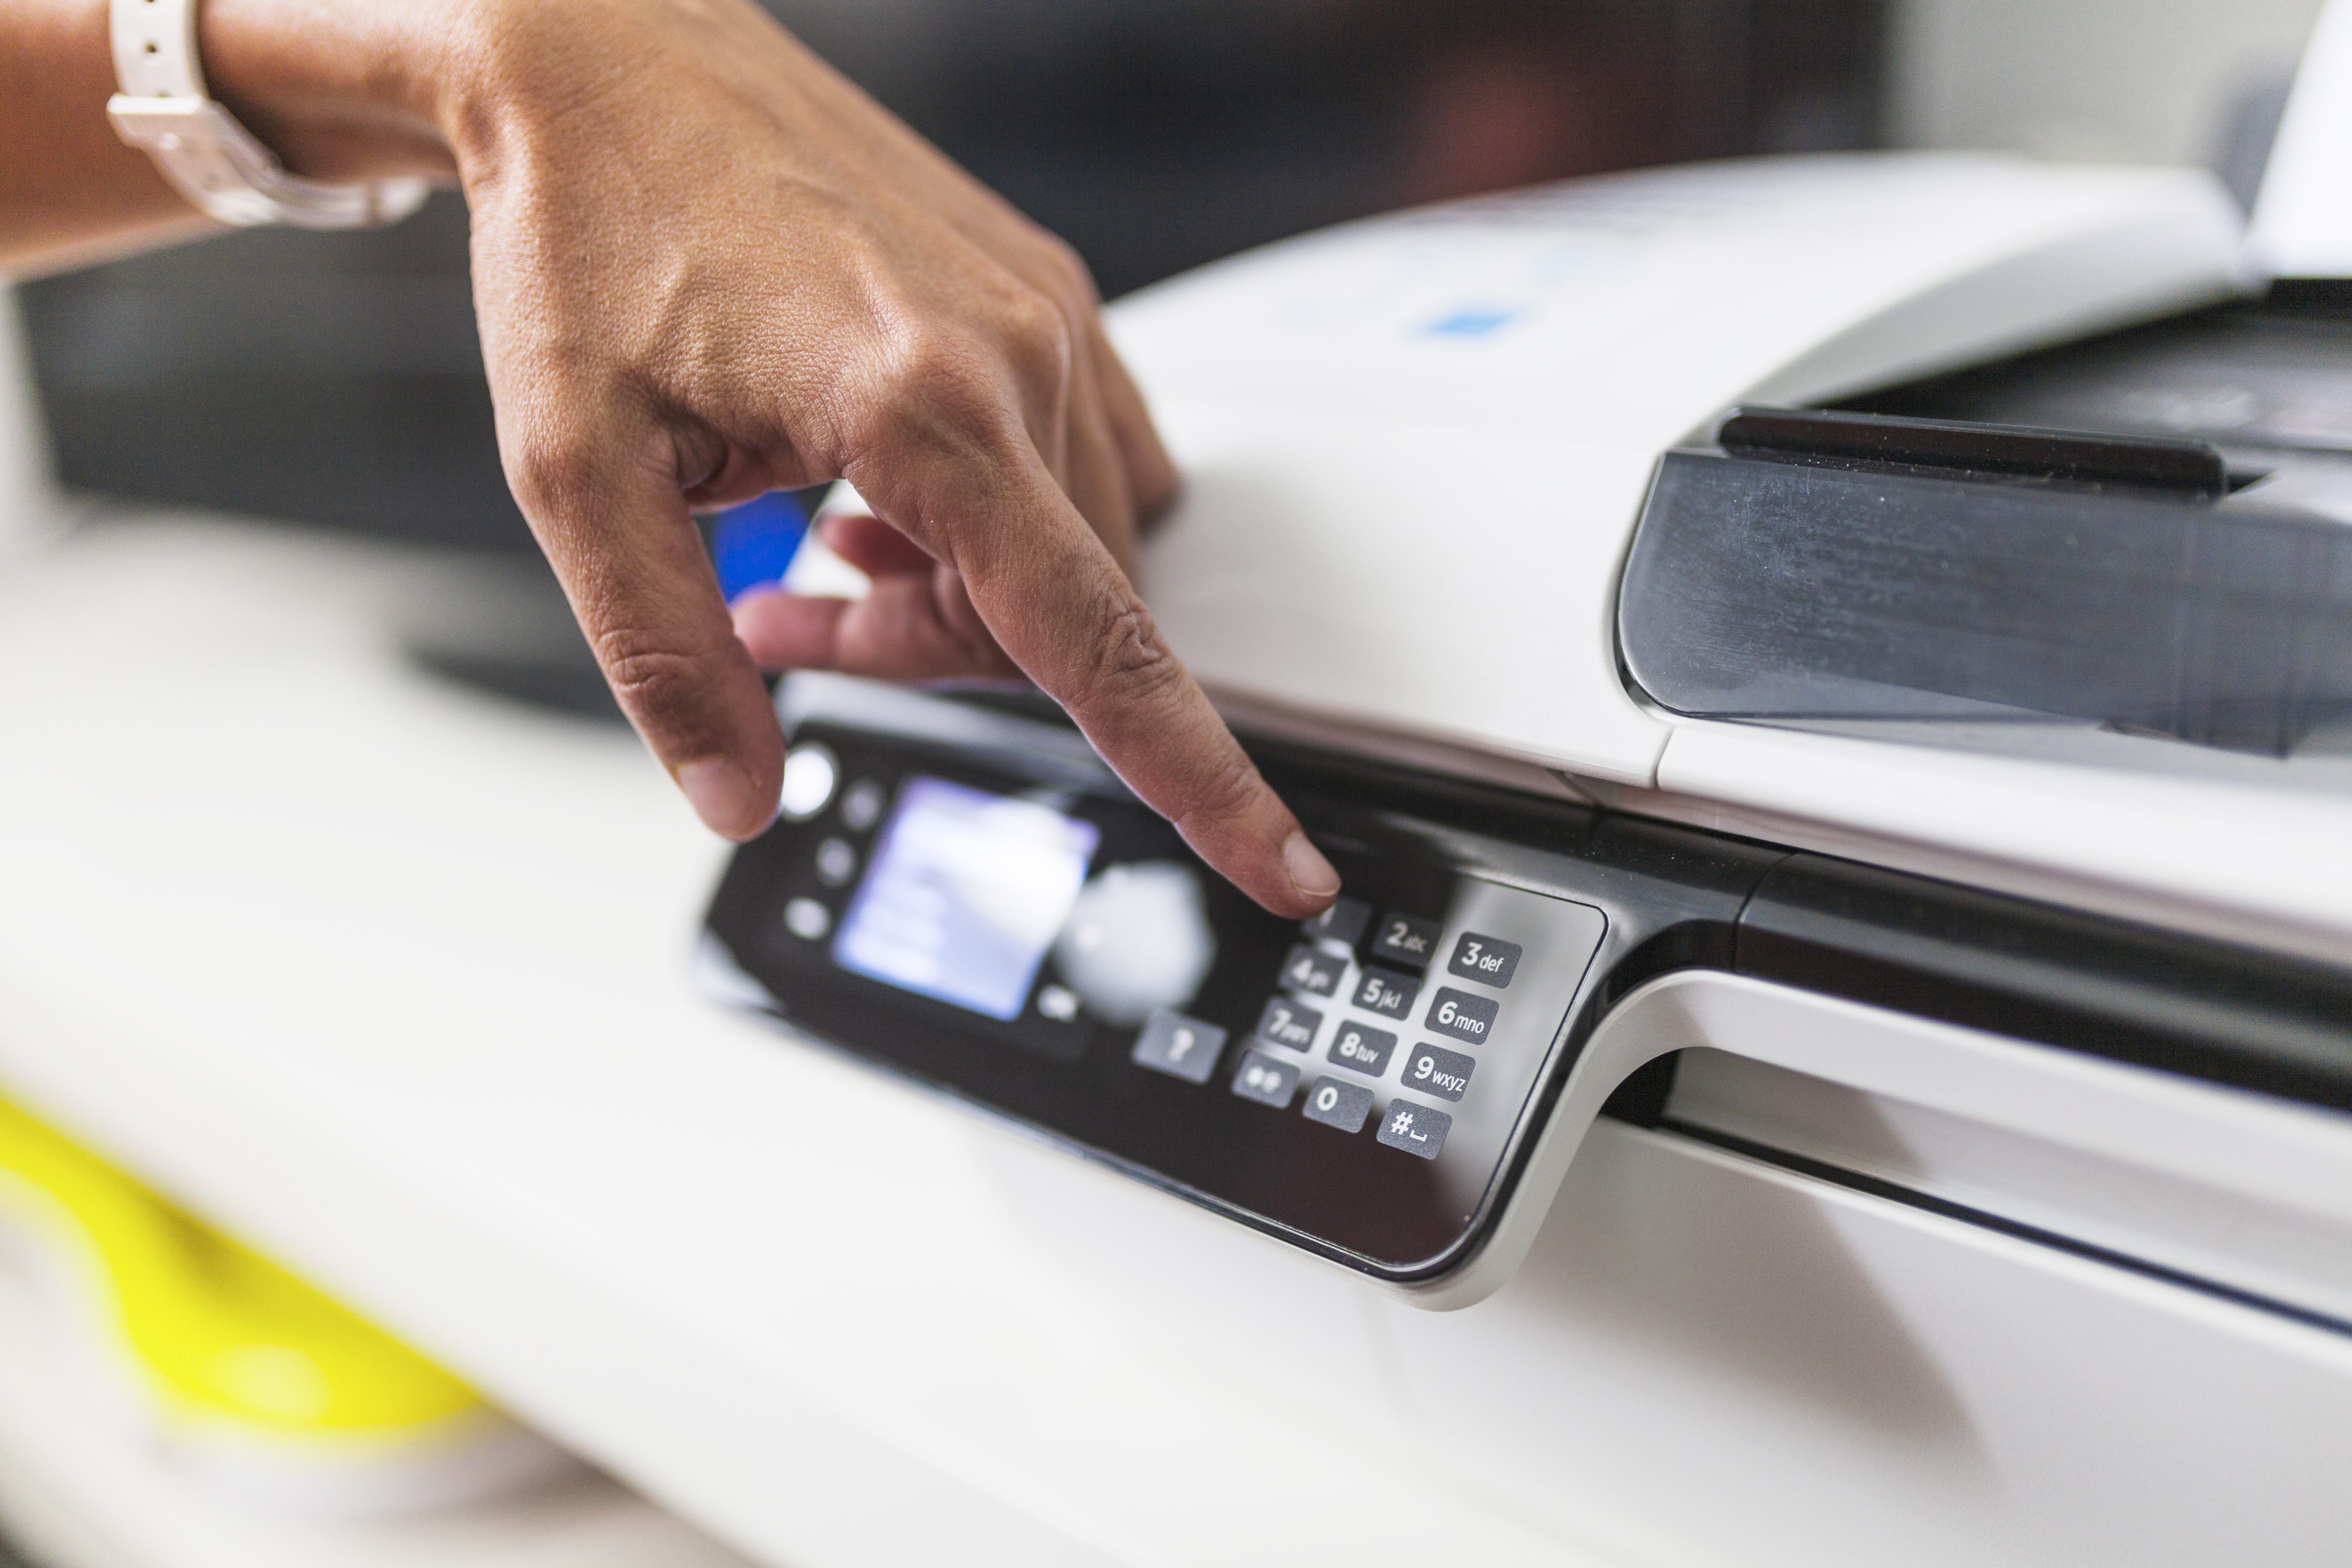 Why Legal Offices Must Make Mfp Security a Top Priority